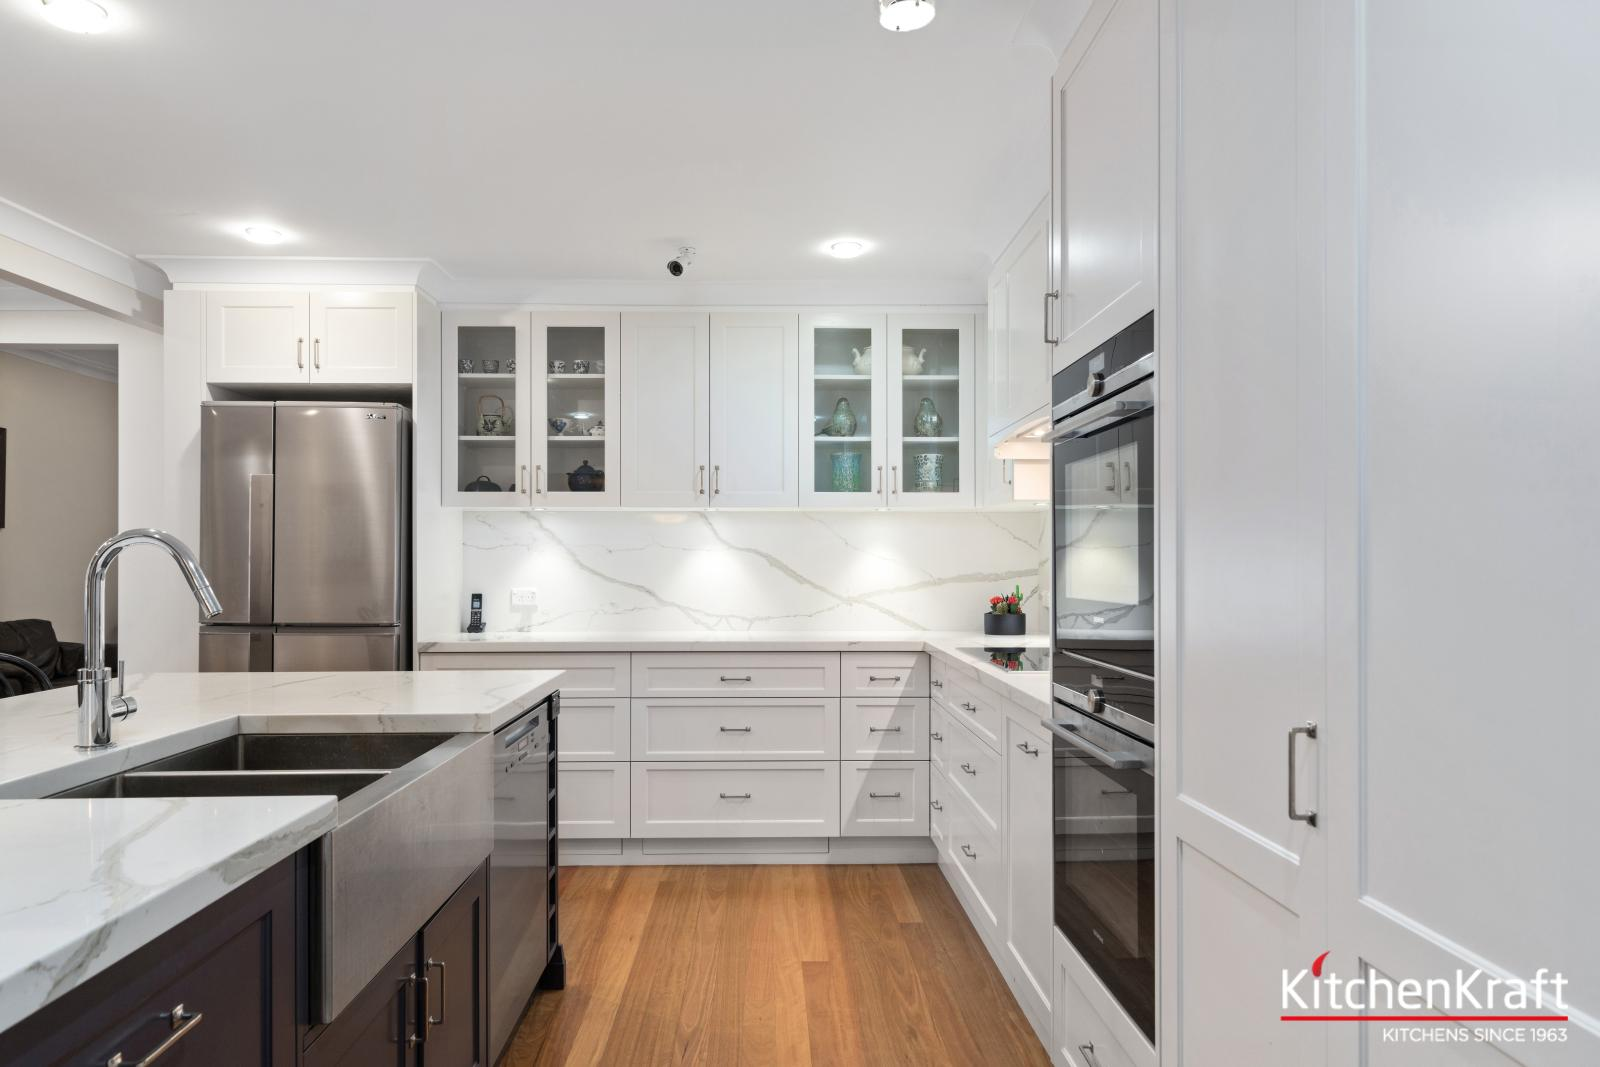 Designer Kitchens Gallery New Kitchen Designs Sydney Ryde